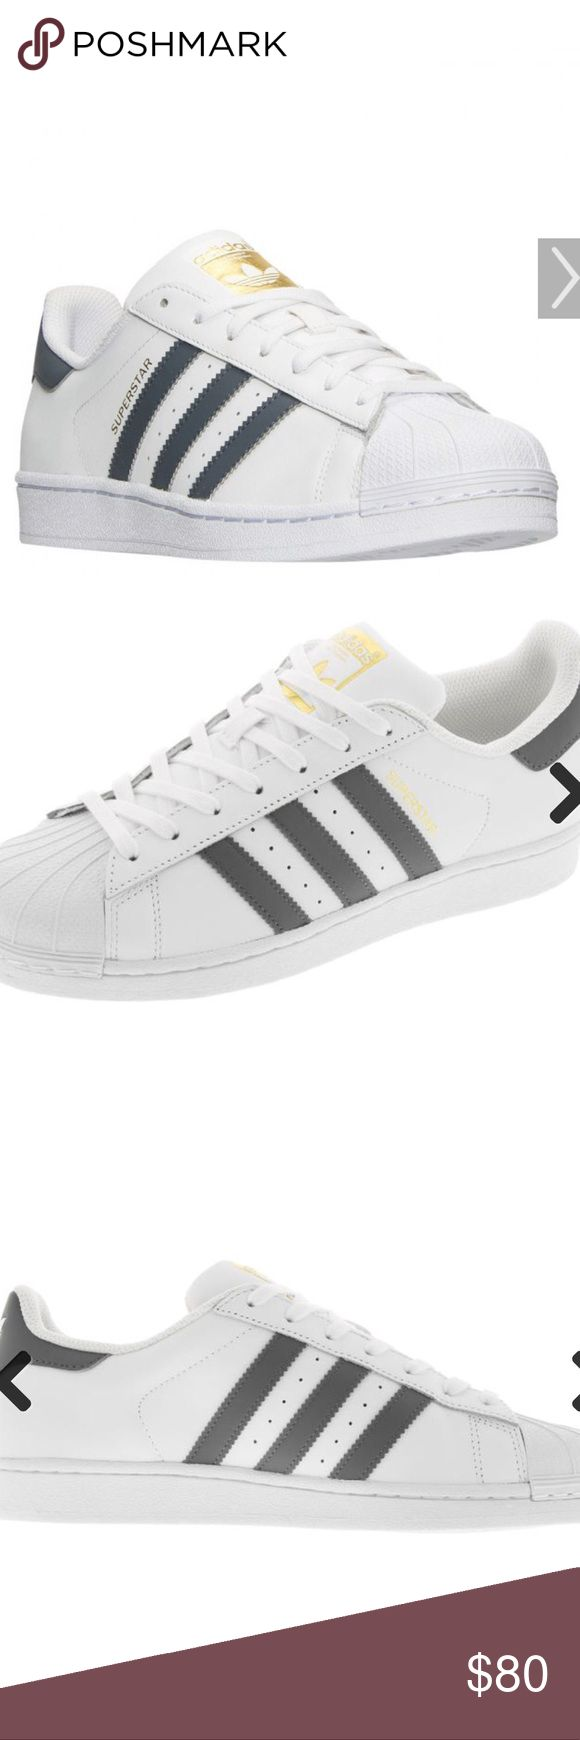 Adidas SUPERSTAR Foundation White/Onix MENSBY3714 Men\u0027s Adidas Originals SUPERSTAR  Foundation White/Onix Gold